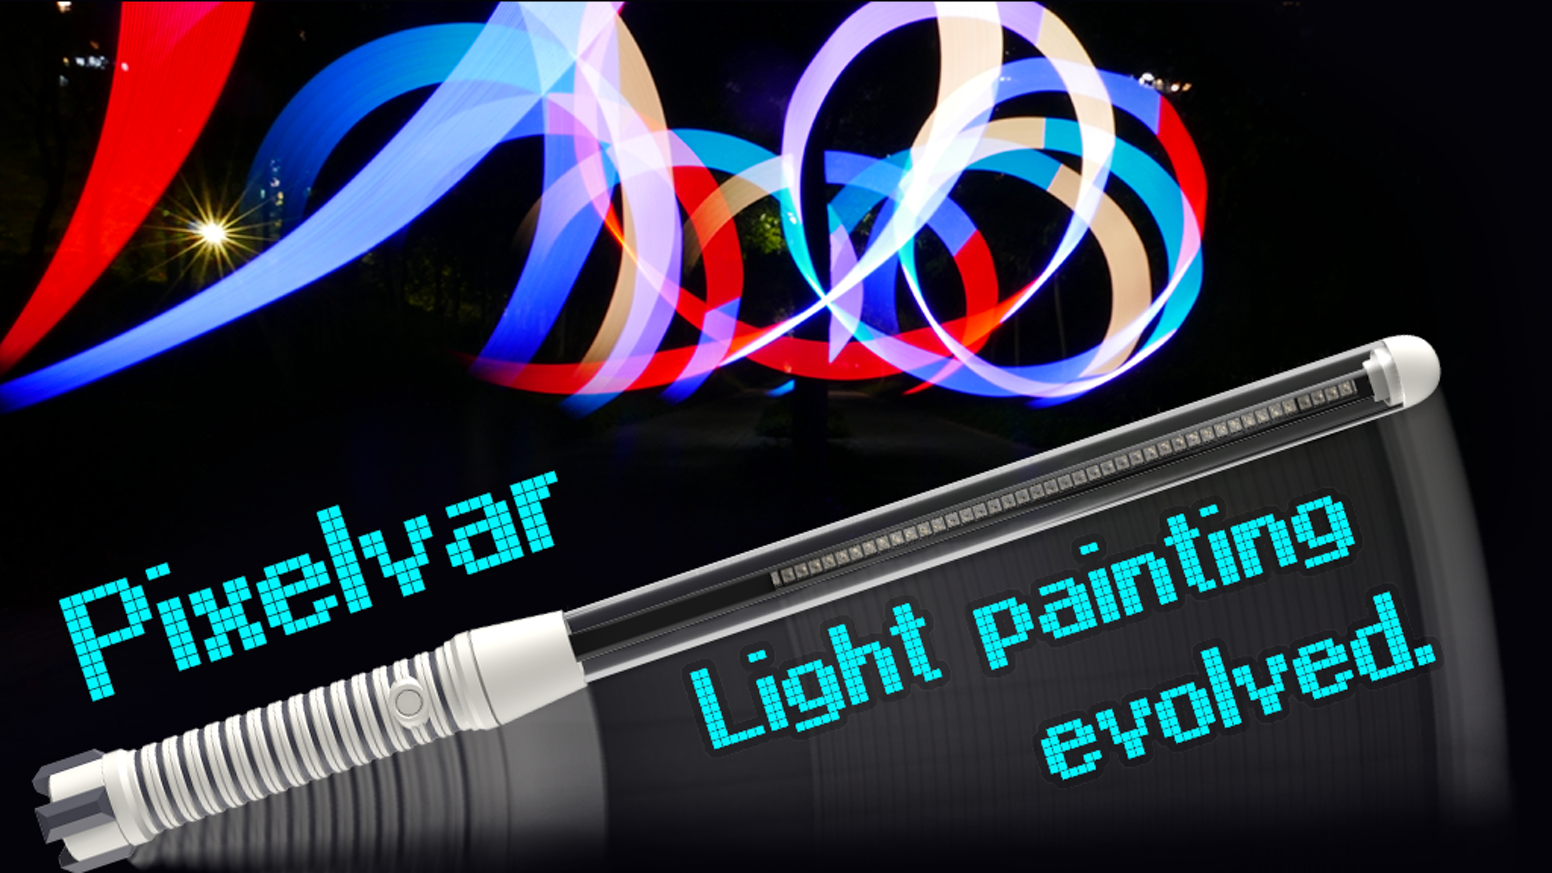 Pixelvar is APP controlled handheld LED POV display. Wave it to see your image in mid air! For players and party.